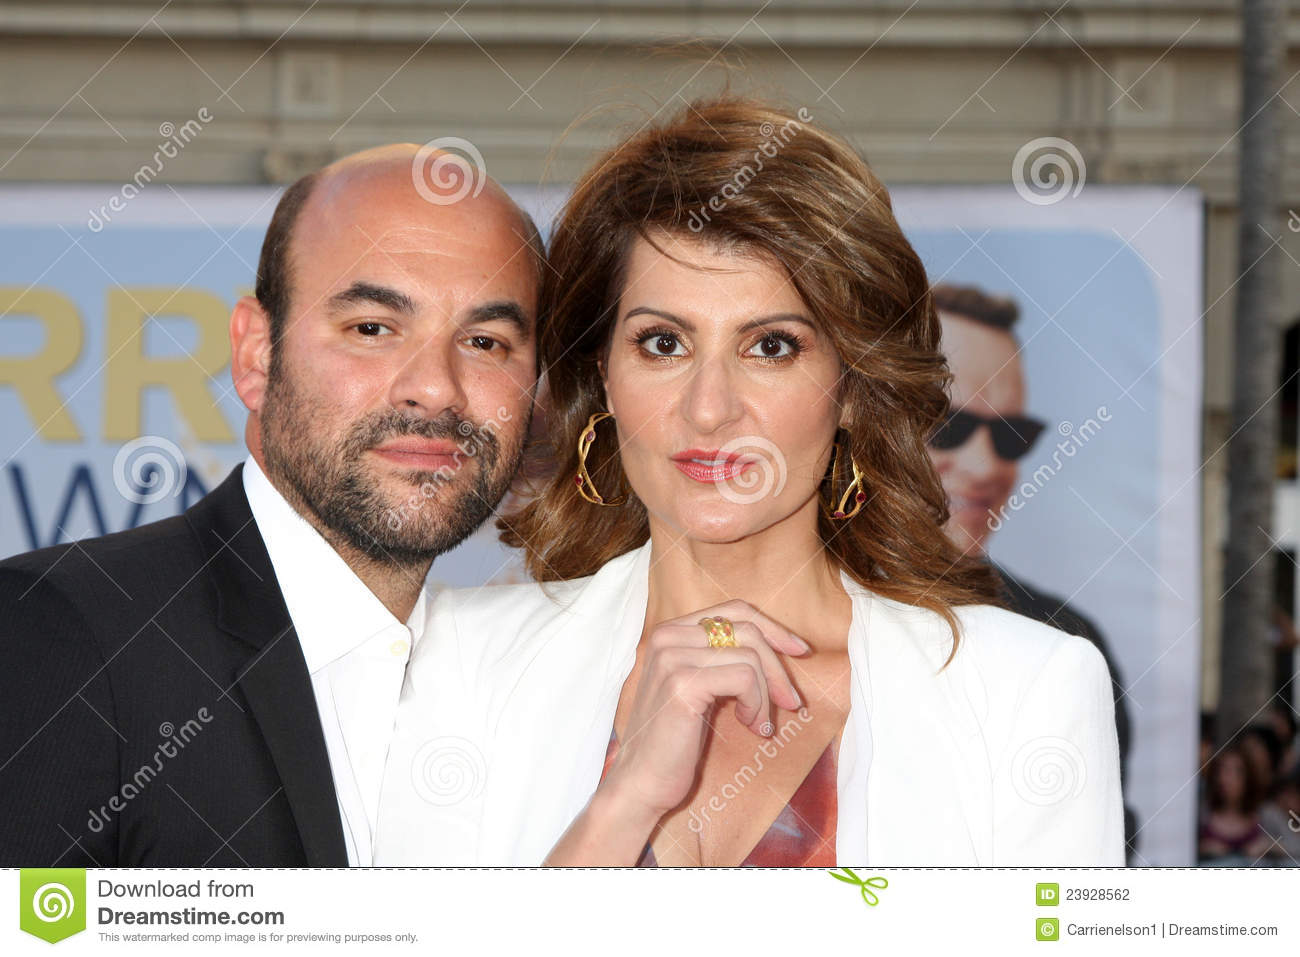 ian gomez weight lossian gomez instagram, ian gomez, ian gomez and nia vardalos, ian gomez alanis morissette, ian gomez height, ian gomez net worth, ian gomez imdb, ian gomez daughter, ian gomez and nia vardalos daughter, ian gomez and nia vardalos wedding, nia vardalos and ian gomez, ian gomez attorney, ian gomez movies, ian gomez weight loss, ian gomez shirtless, ian gomez ethnicity, ian gomez wife nia vardalos